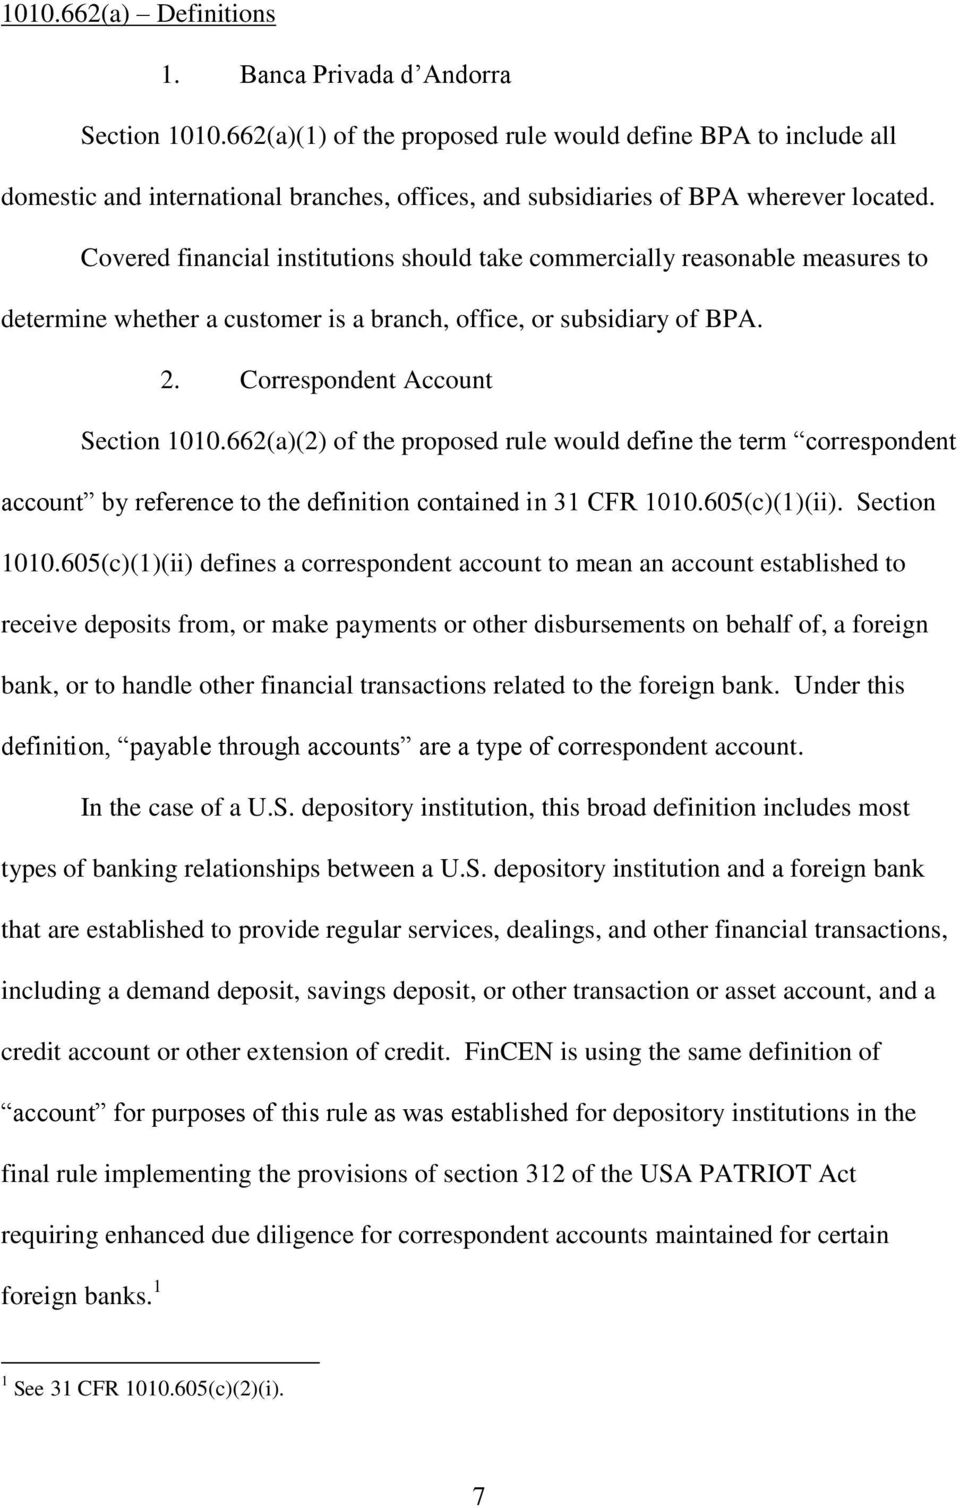 Covered financial institutions should take commercially reasonable measures to determine whether a customer is a branch, office, or subsidiary of BPA. 2. Correspondent Account Section 1010.